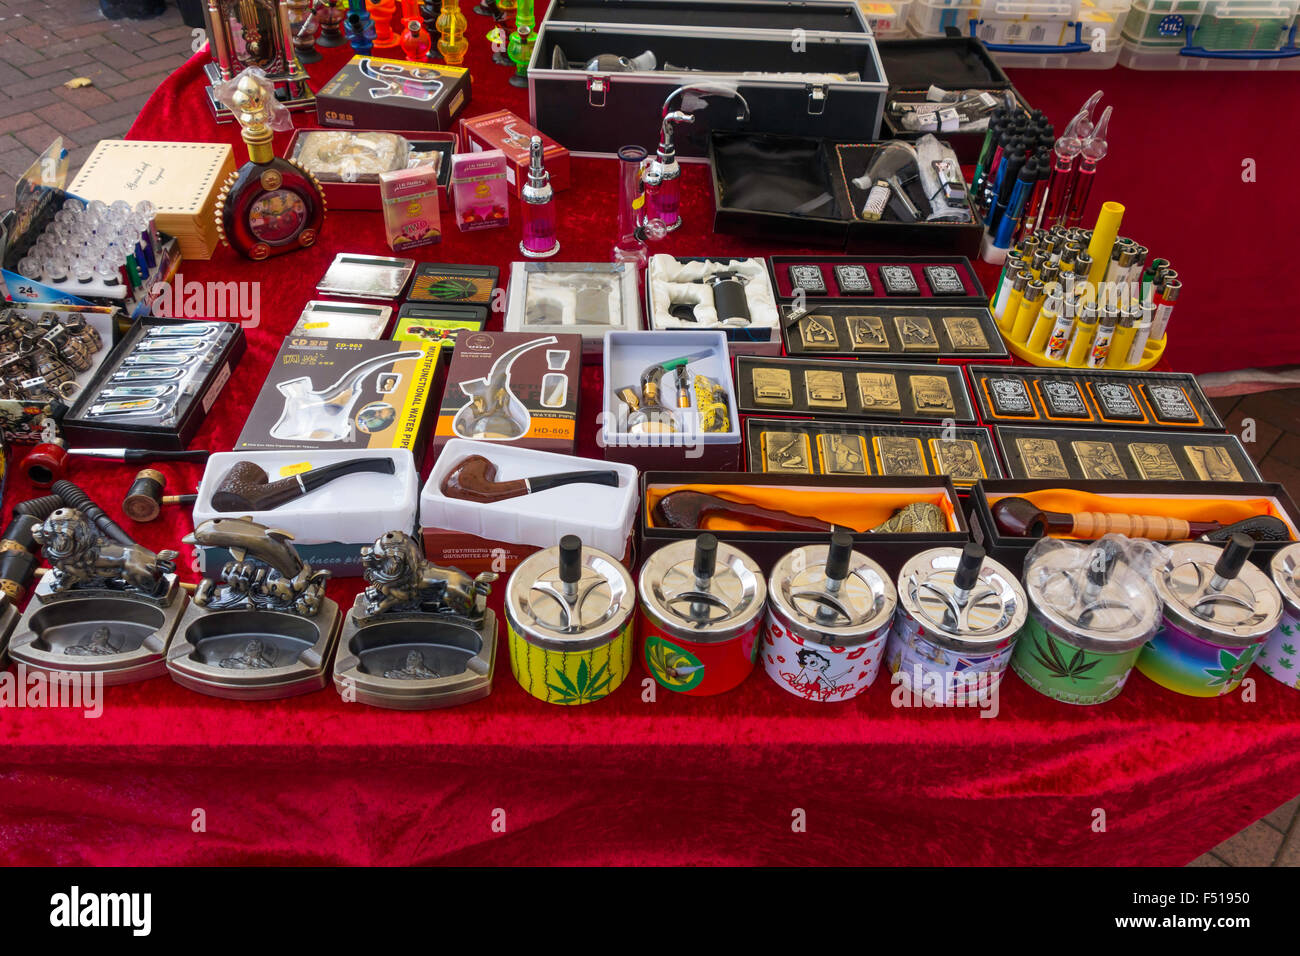 A display of smoking accessories pipes ashtrays lighters on a stall at a weekly small town English Market - Stock Image